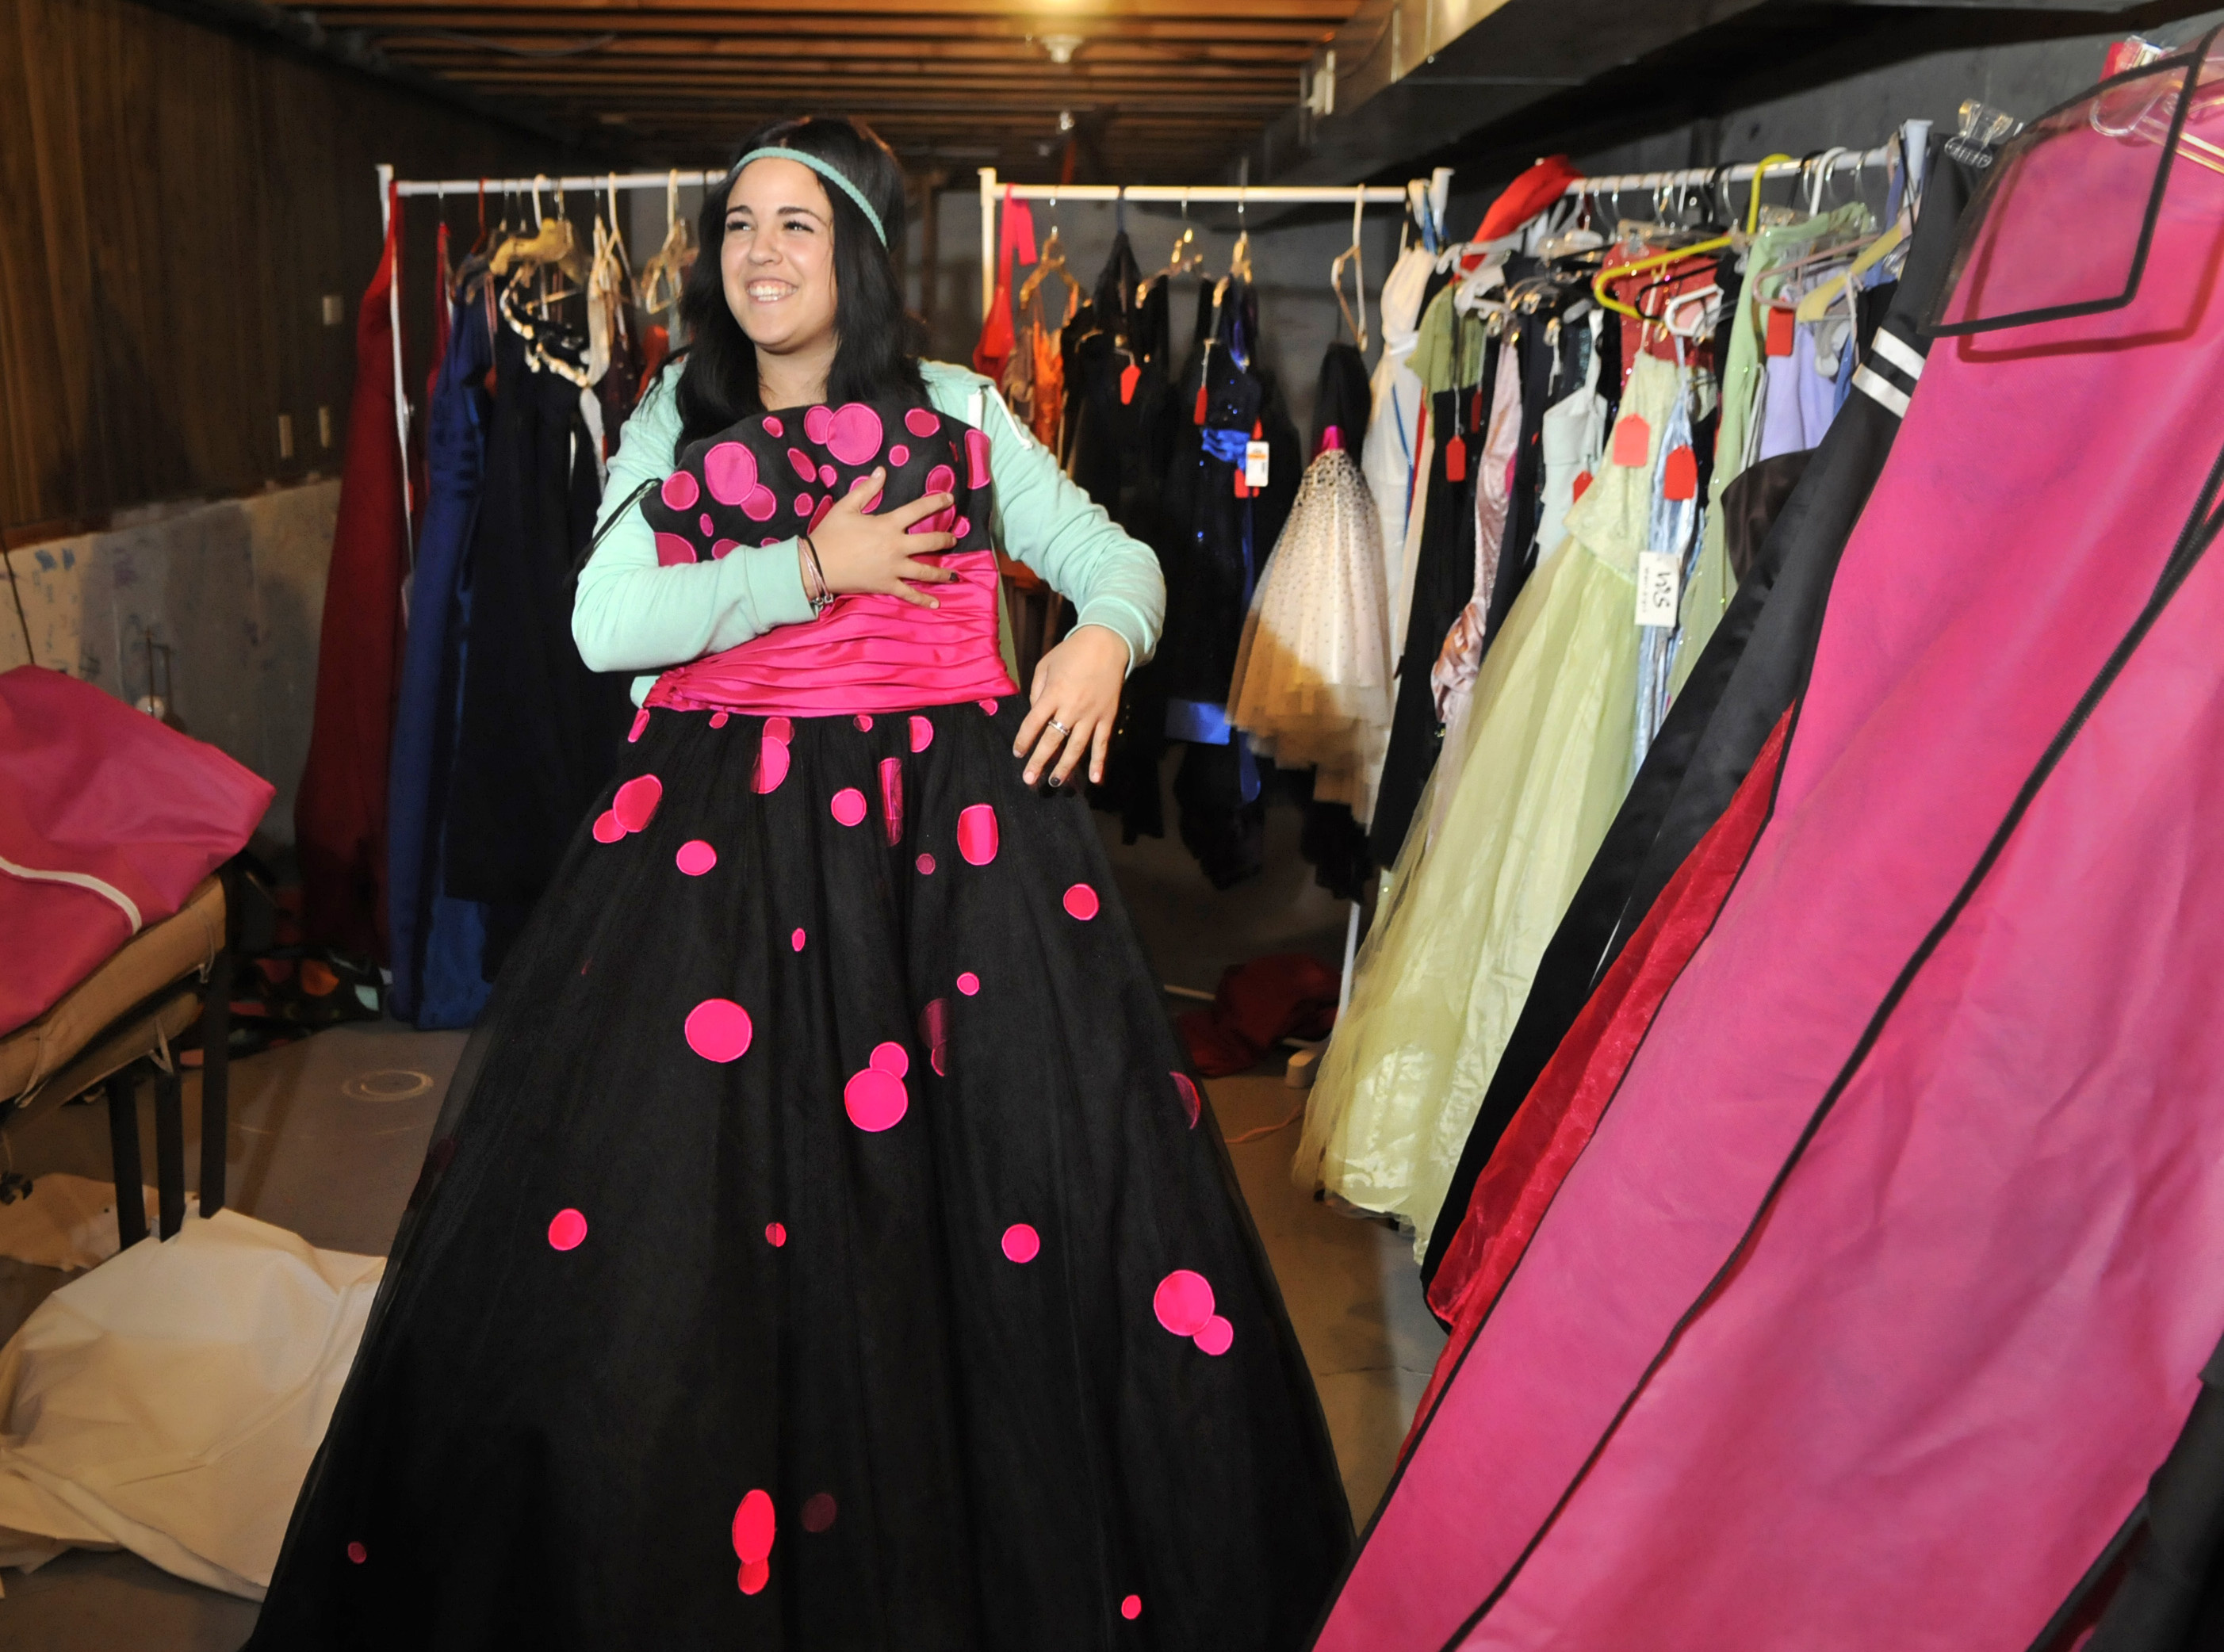 Senior project collects affordable prom dresses | The Spokesman-Review